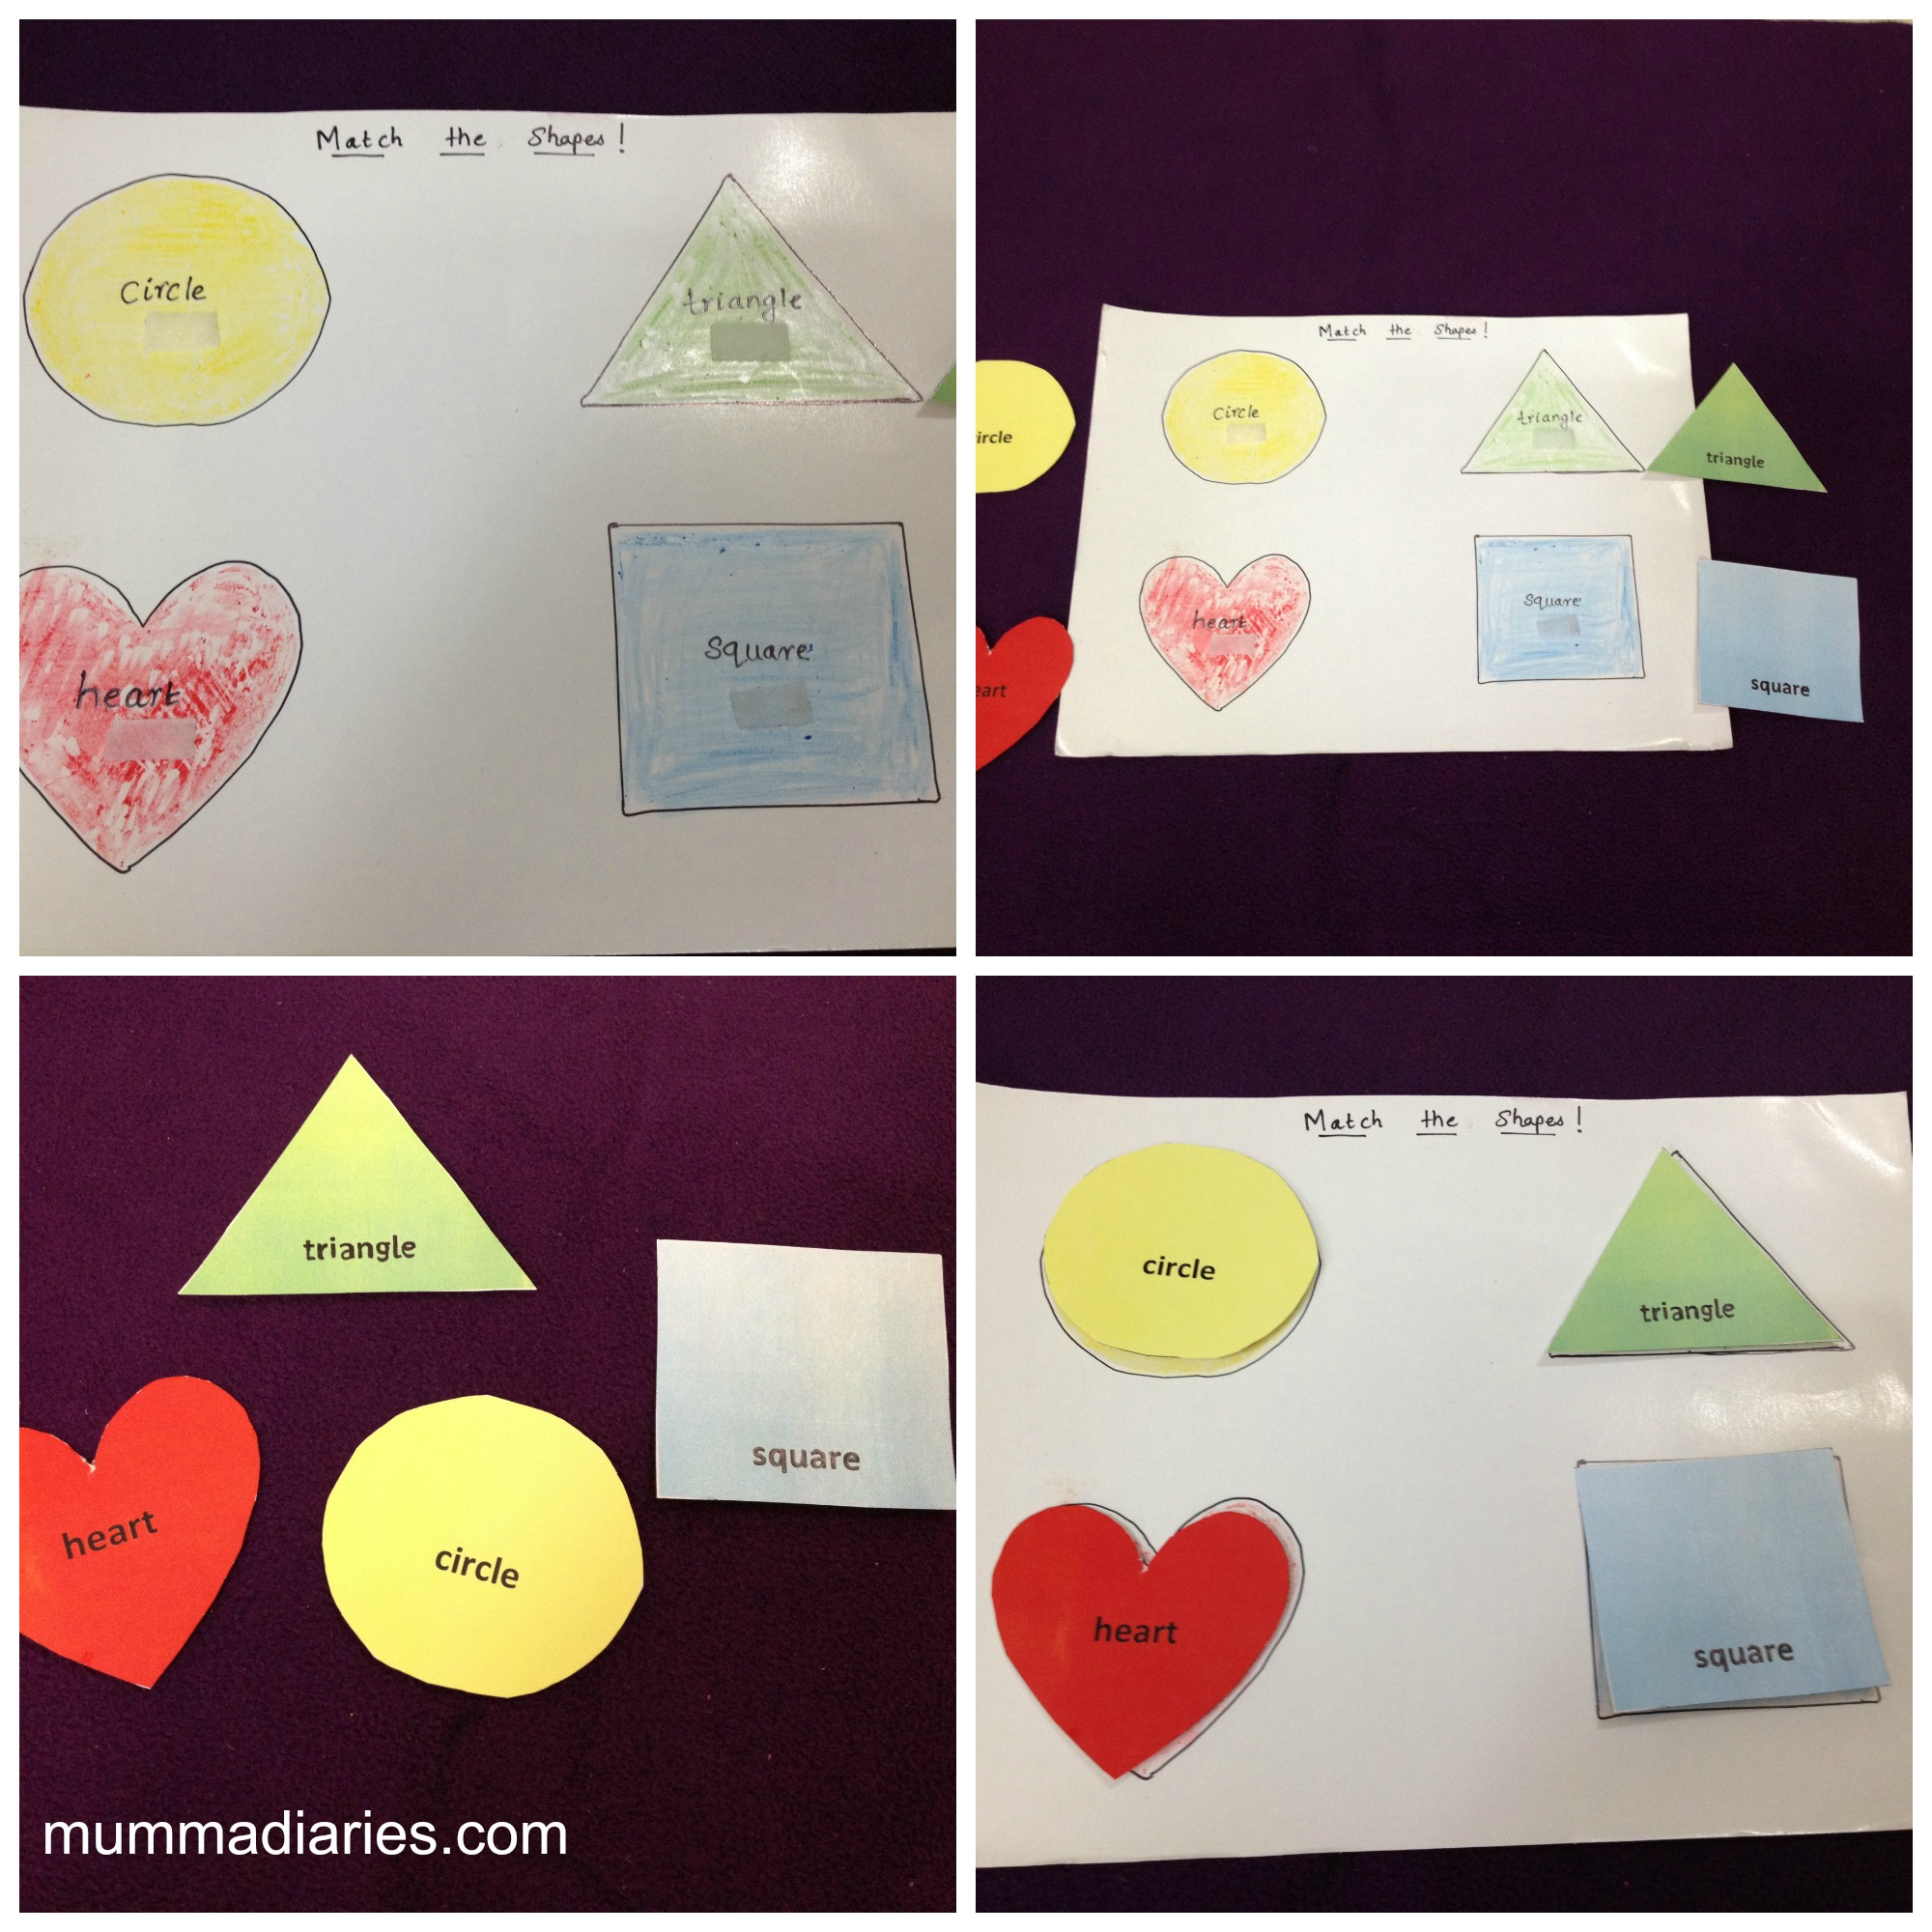 Match the shapes-1